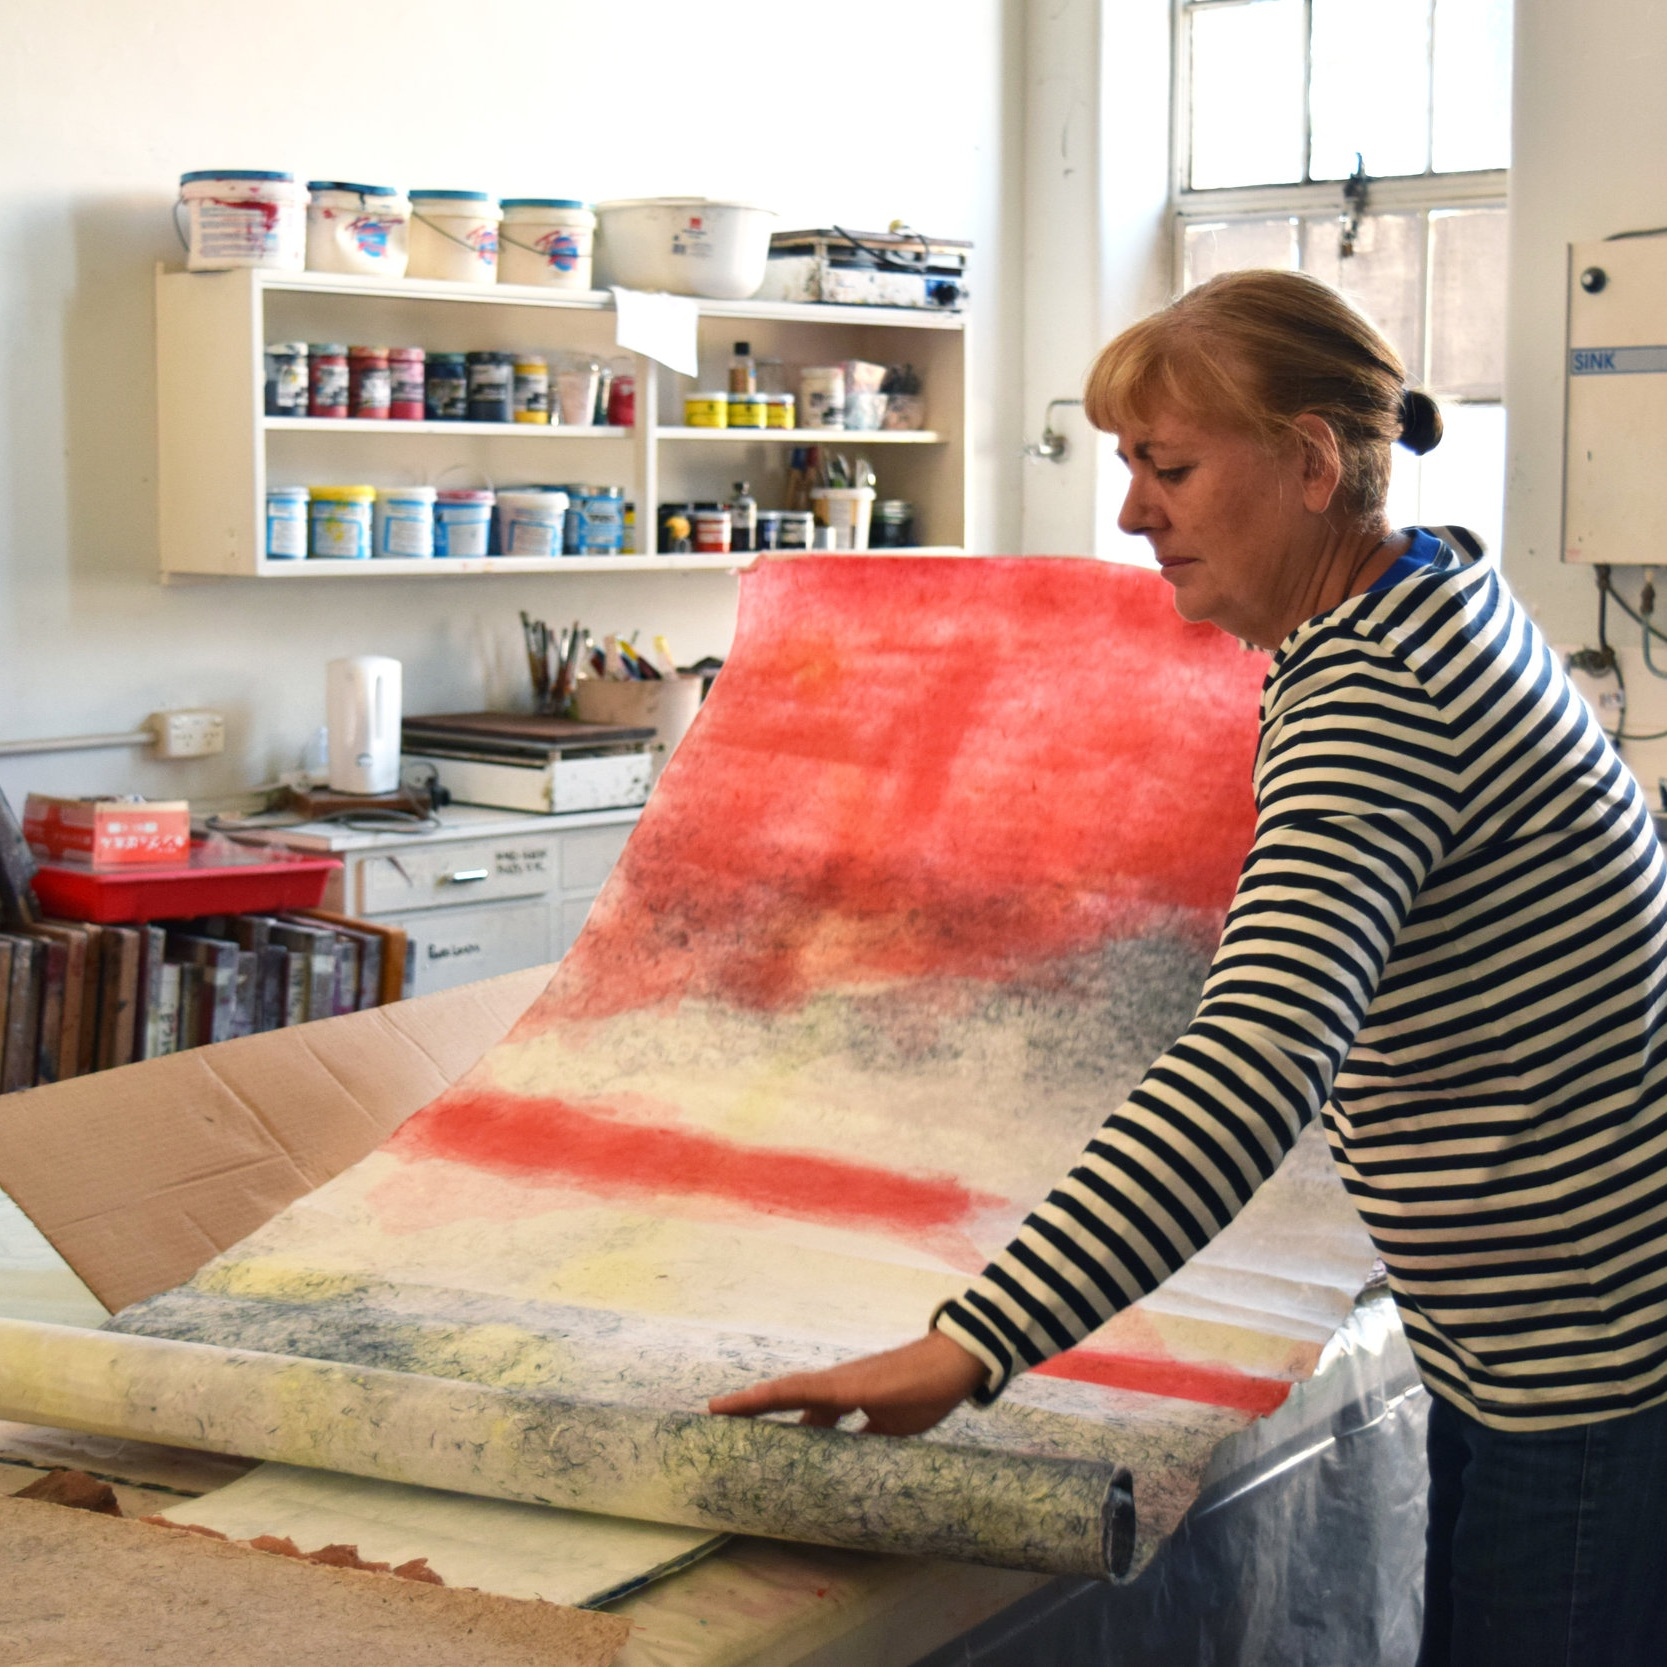 Papermaking - Learn to make paper by blending, beating and pressing with Ingrid Mulder of Crow Mountain Paper Studios. Ingrid will be using a range of plant fibres on the day especially invasive species. Having lived and worked at the Washi No Sato Paper making factory in Japan for over 12 years, Ingrid has a wealth of paper making expertise to share in WA.FREE